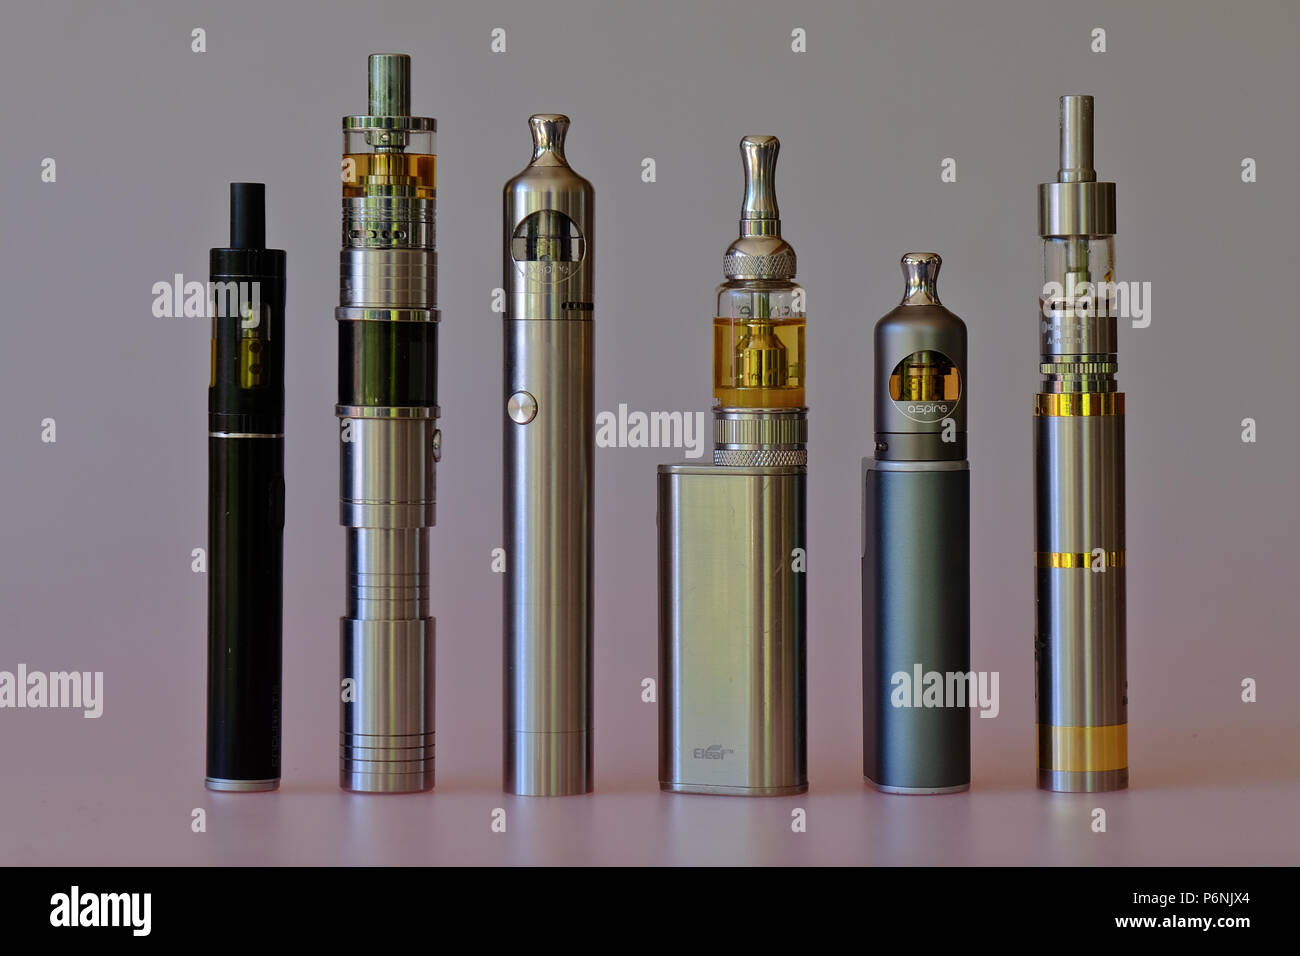 A set of different tube ecigarette devices for eletronic smoking or vaping with eliquid - Stock Image